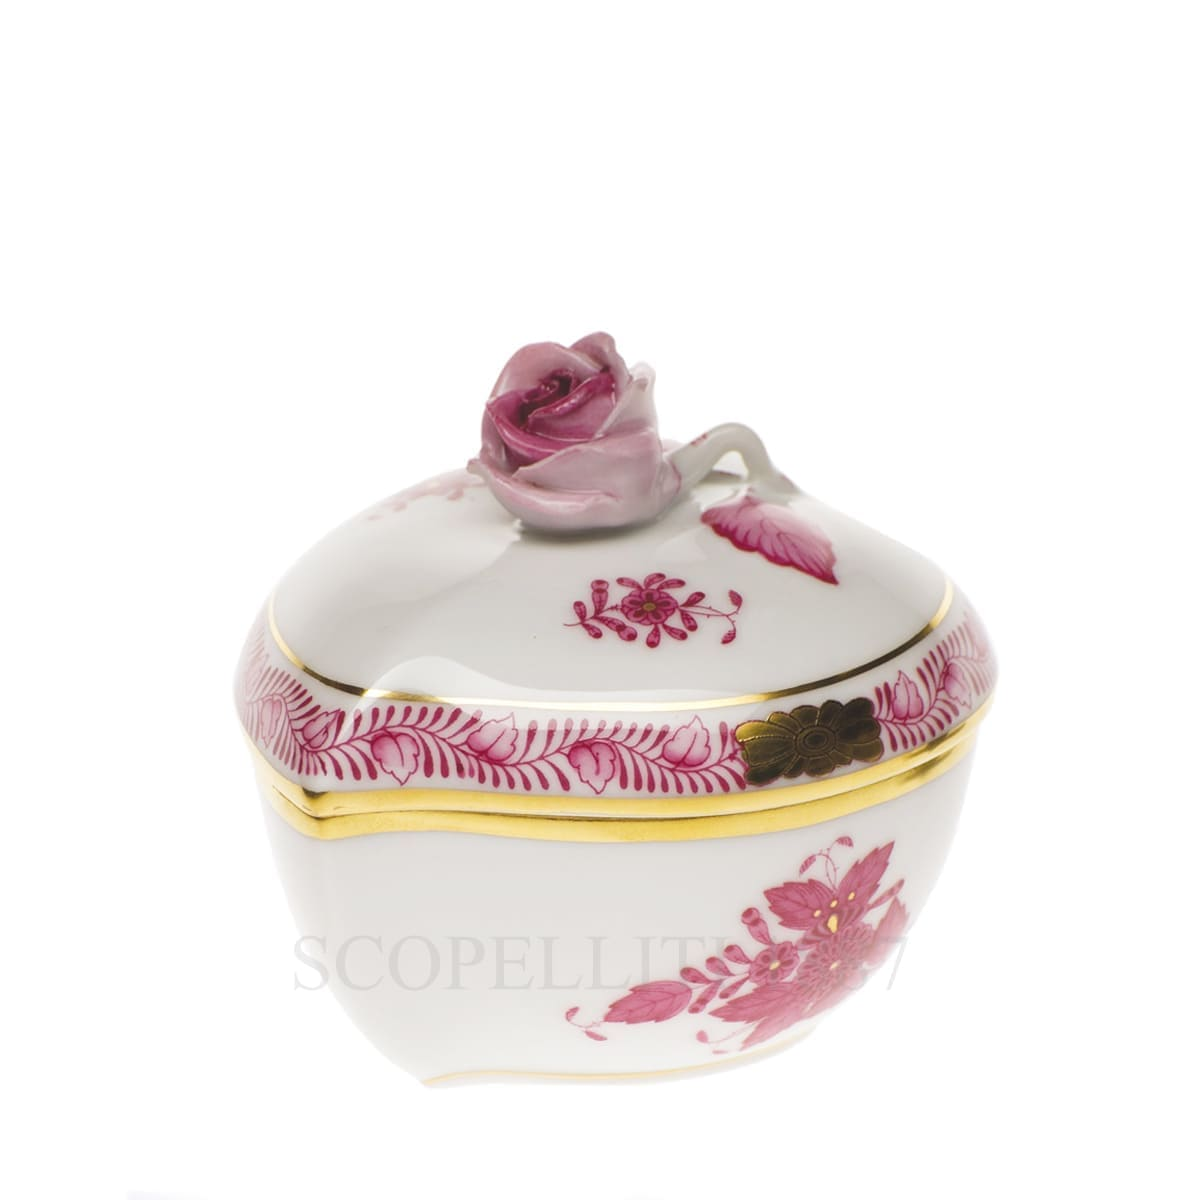 Herend Apponyi Heart Box with Rose 6005-09 AP